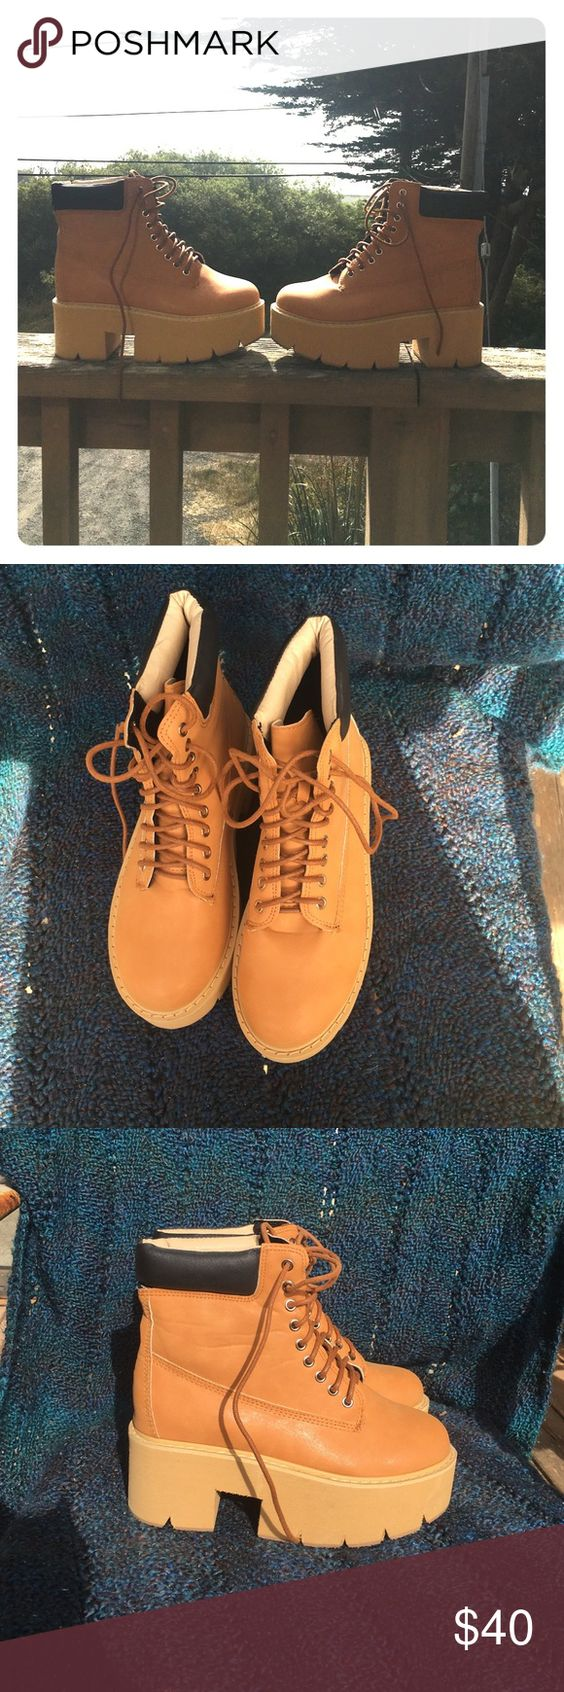 Amazing Jeffrey Campbell Nirvana Look Alikes I bought these from someone on depop, they're platform timberland style shoes. They don't fit me. I just want to make some of my money back. Great condition. Looks like they've only been worn once. Cheaper on Ⓜ️ Jeffrey Campbell Shoes Platforms